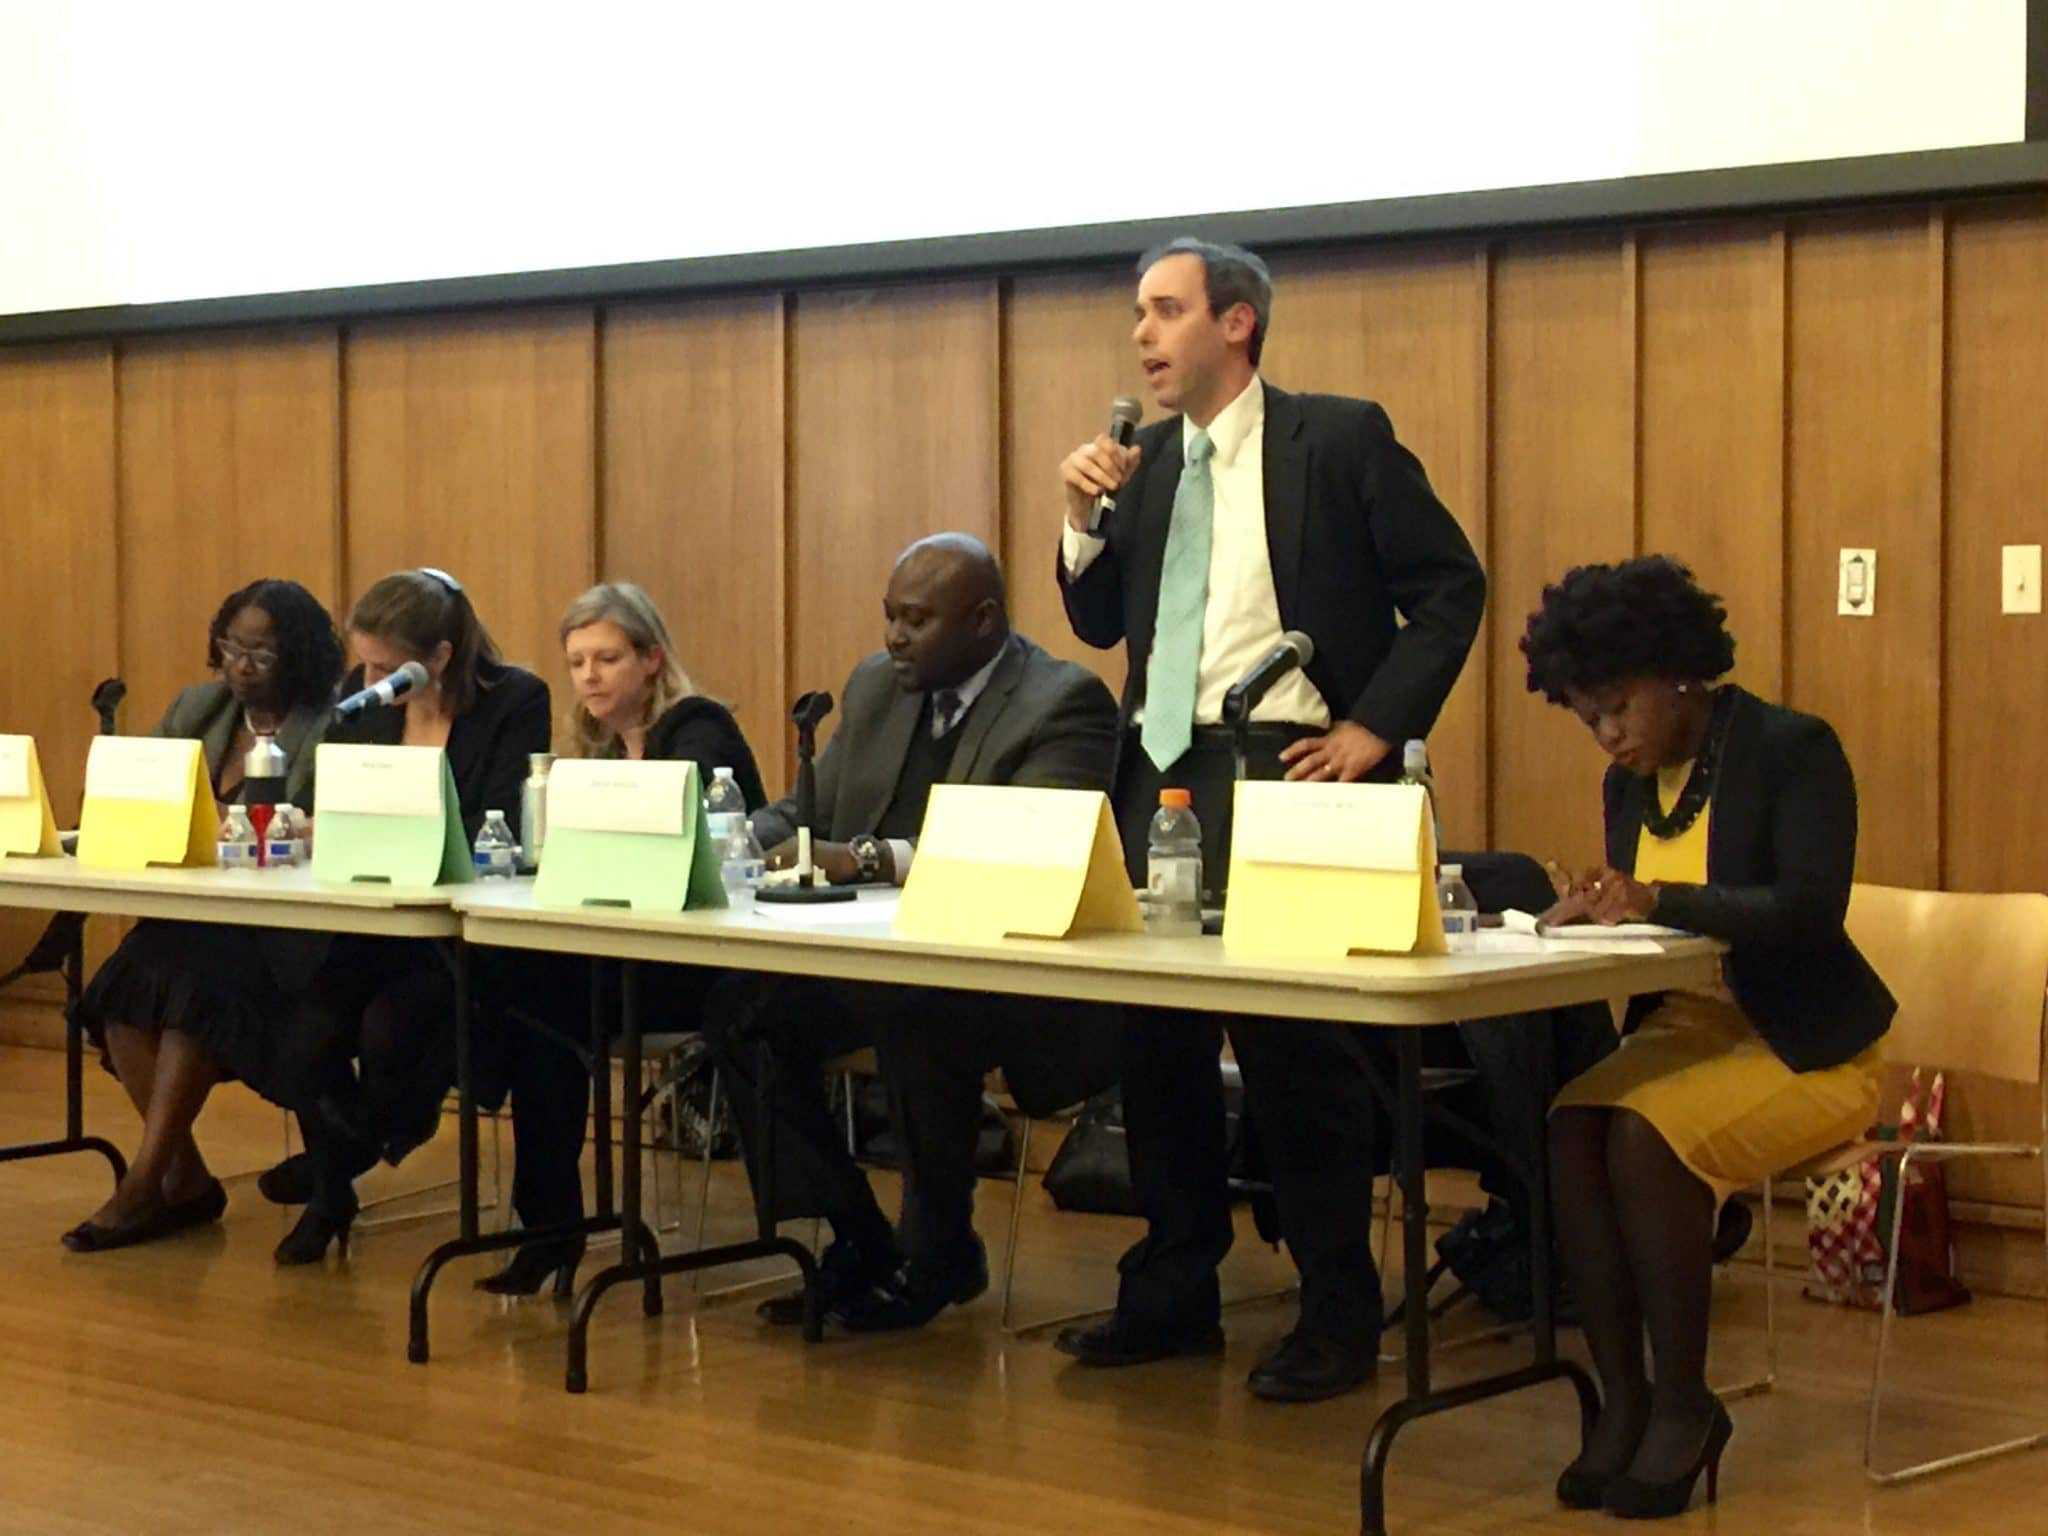 Candidates Focus on Experience, Priorities During District 20 Forum - With little to differentiate each other in terms of policy, candidates for state delegate focused on their priorities, background and experience to try to stand out before a standing-room-only crowd attending a forum Thursday night at the Silver Spring Civic Building.